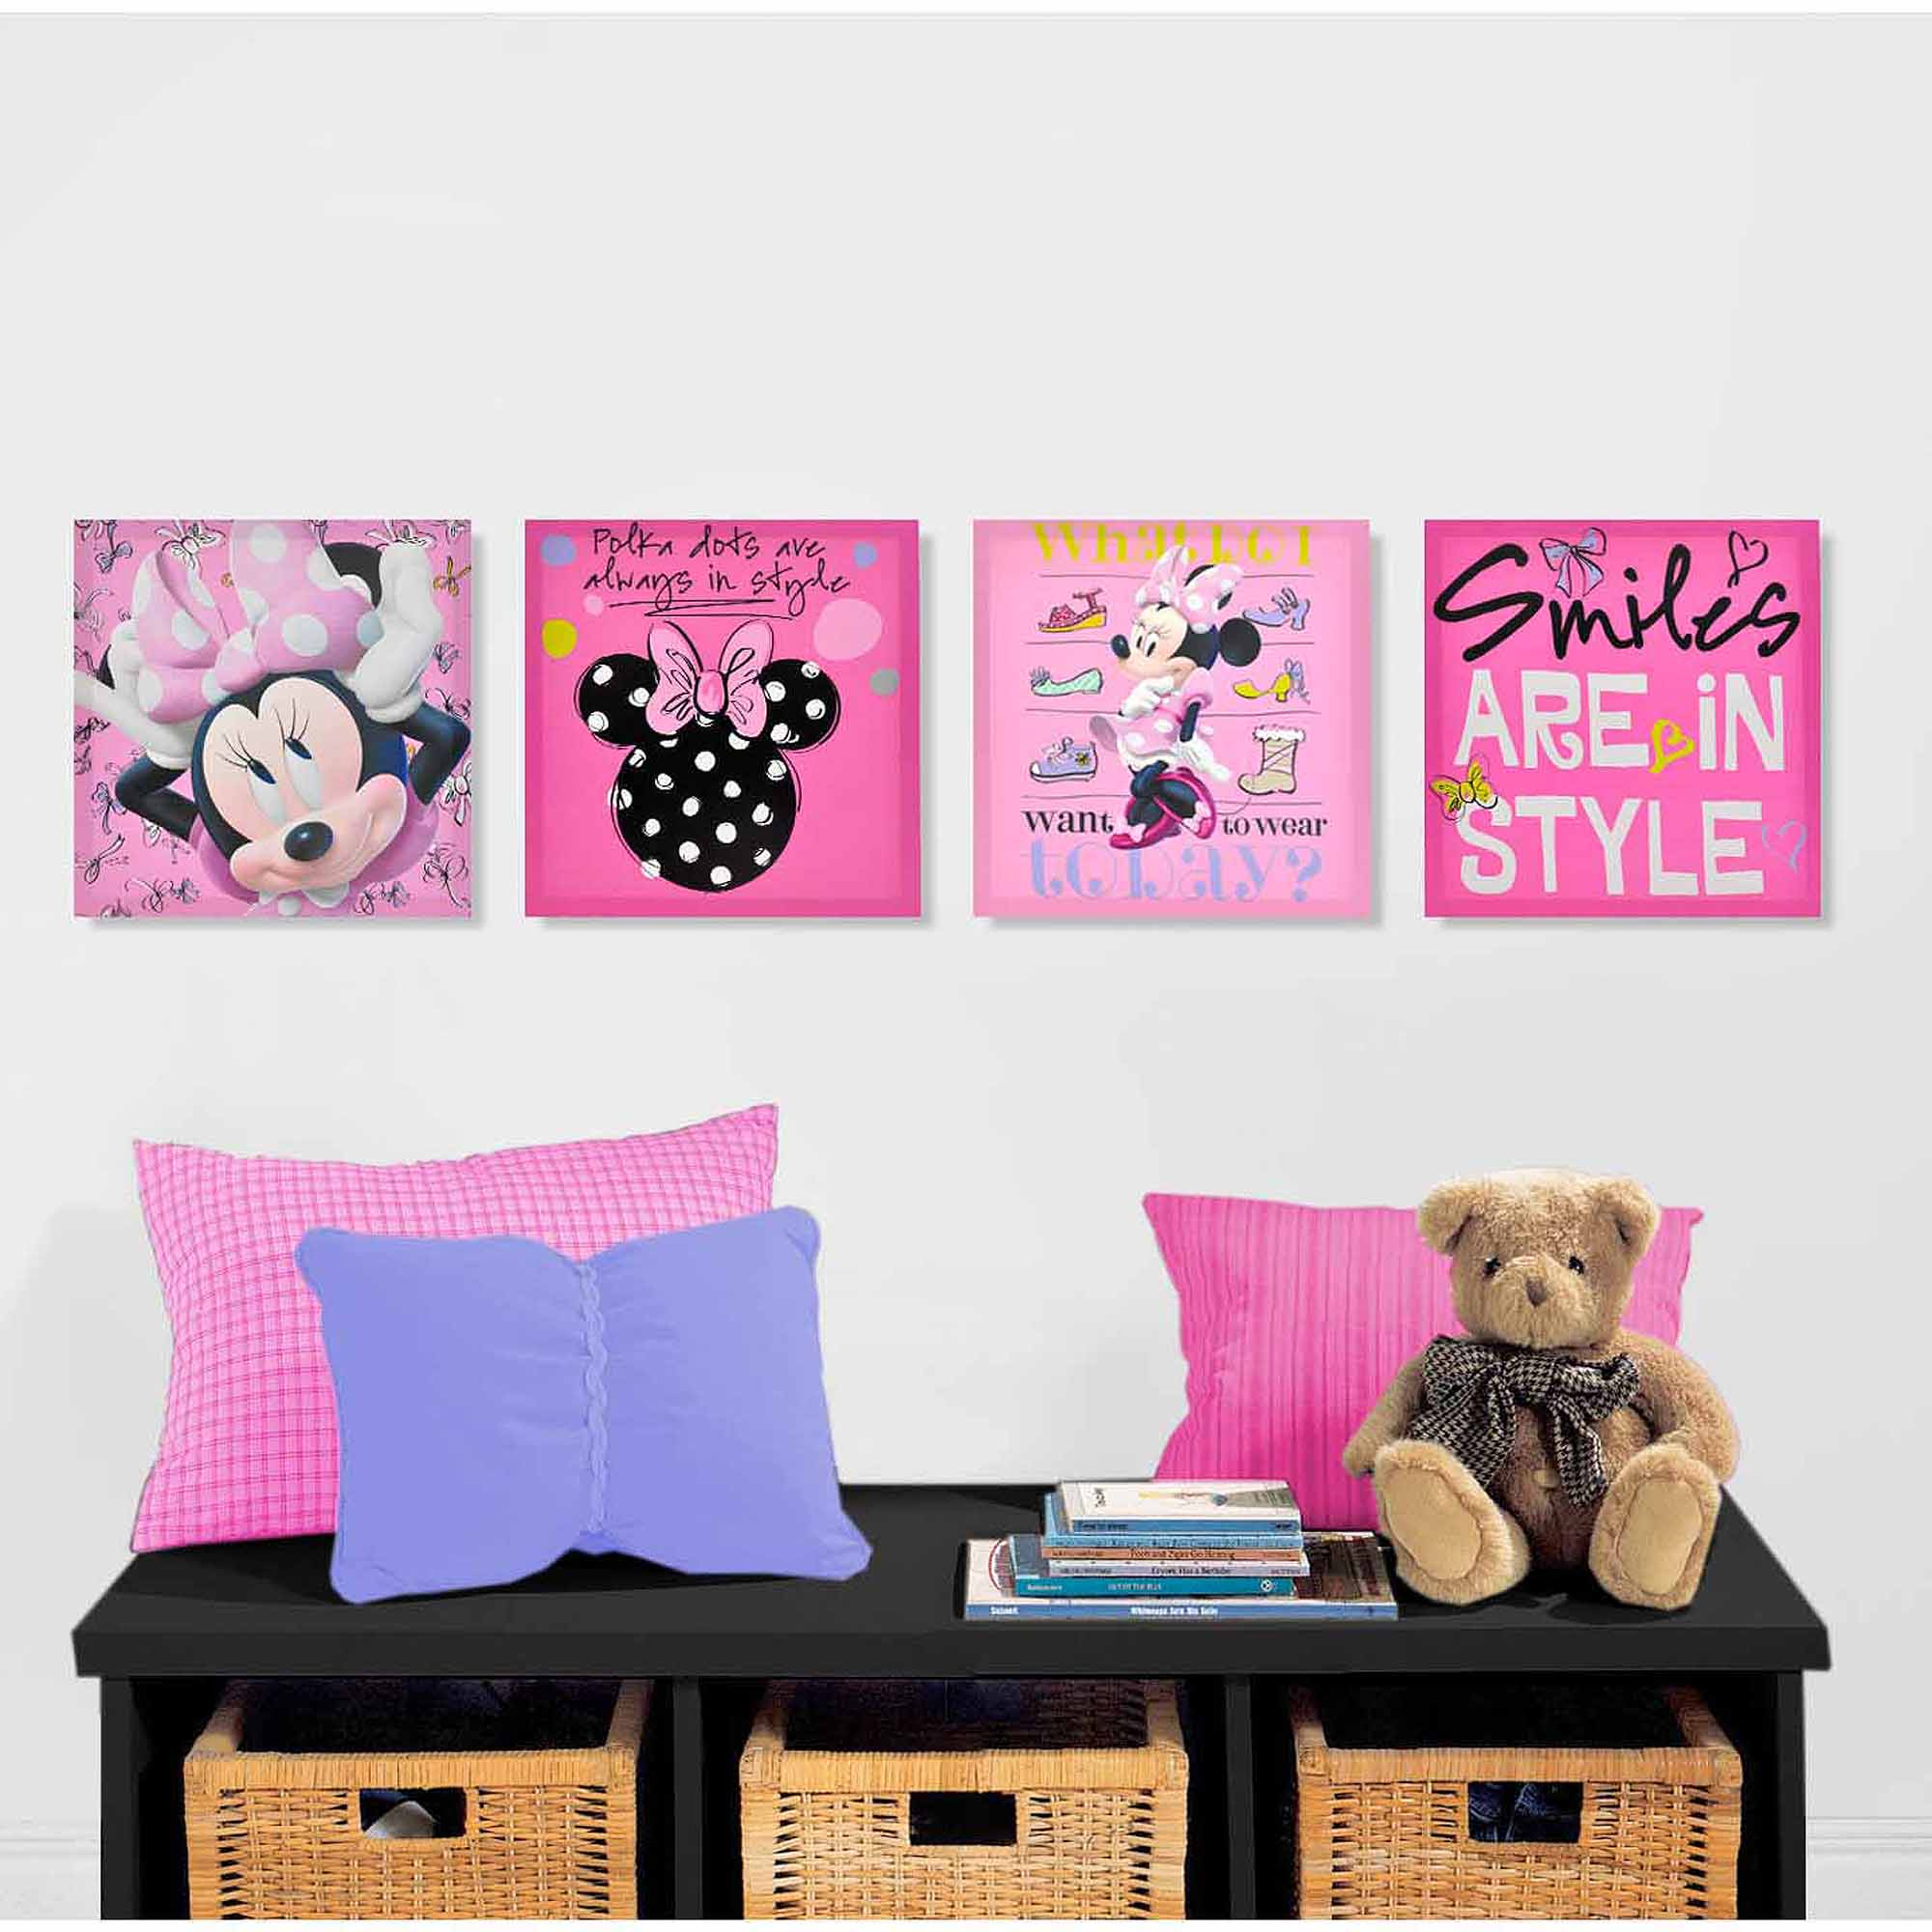 Mickey and Minnie Room Decor | Personalized Minnie Mouse Wall Decal | Minnie Mouse Wall Decor